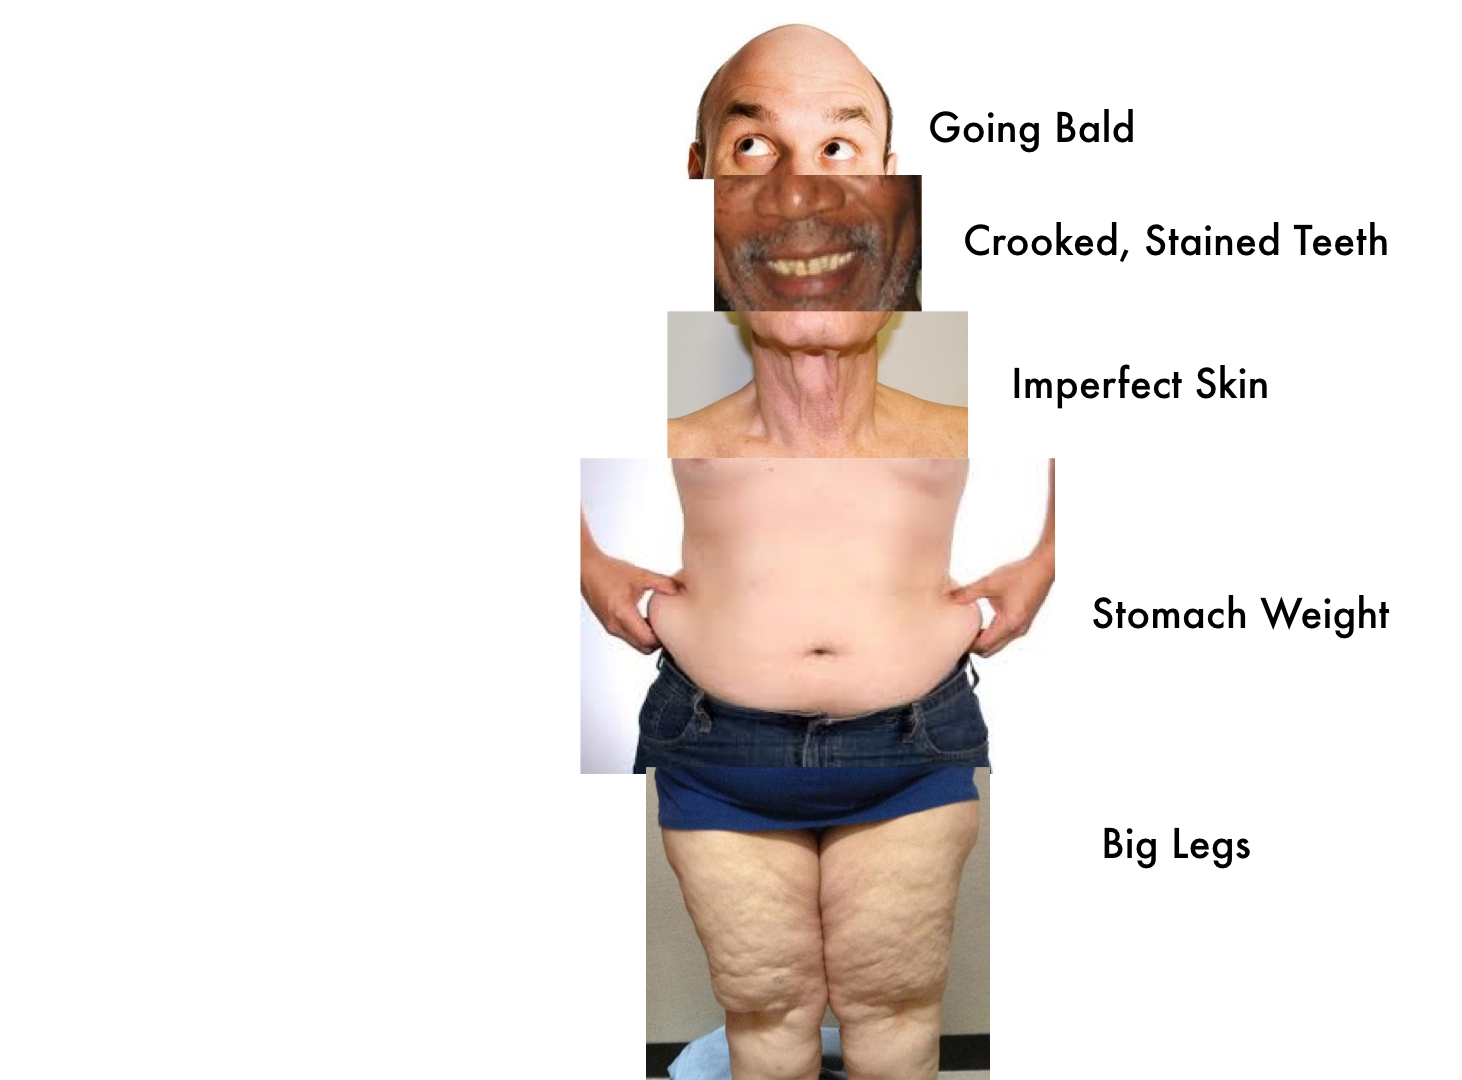 The Components of Self-Hate - A look at our most loathed body parts.